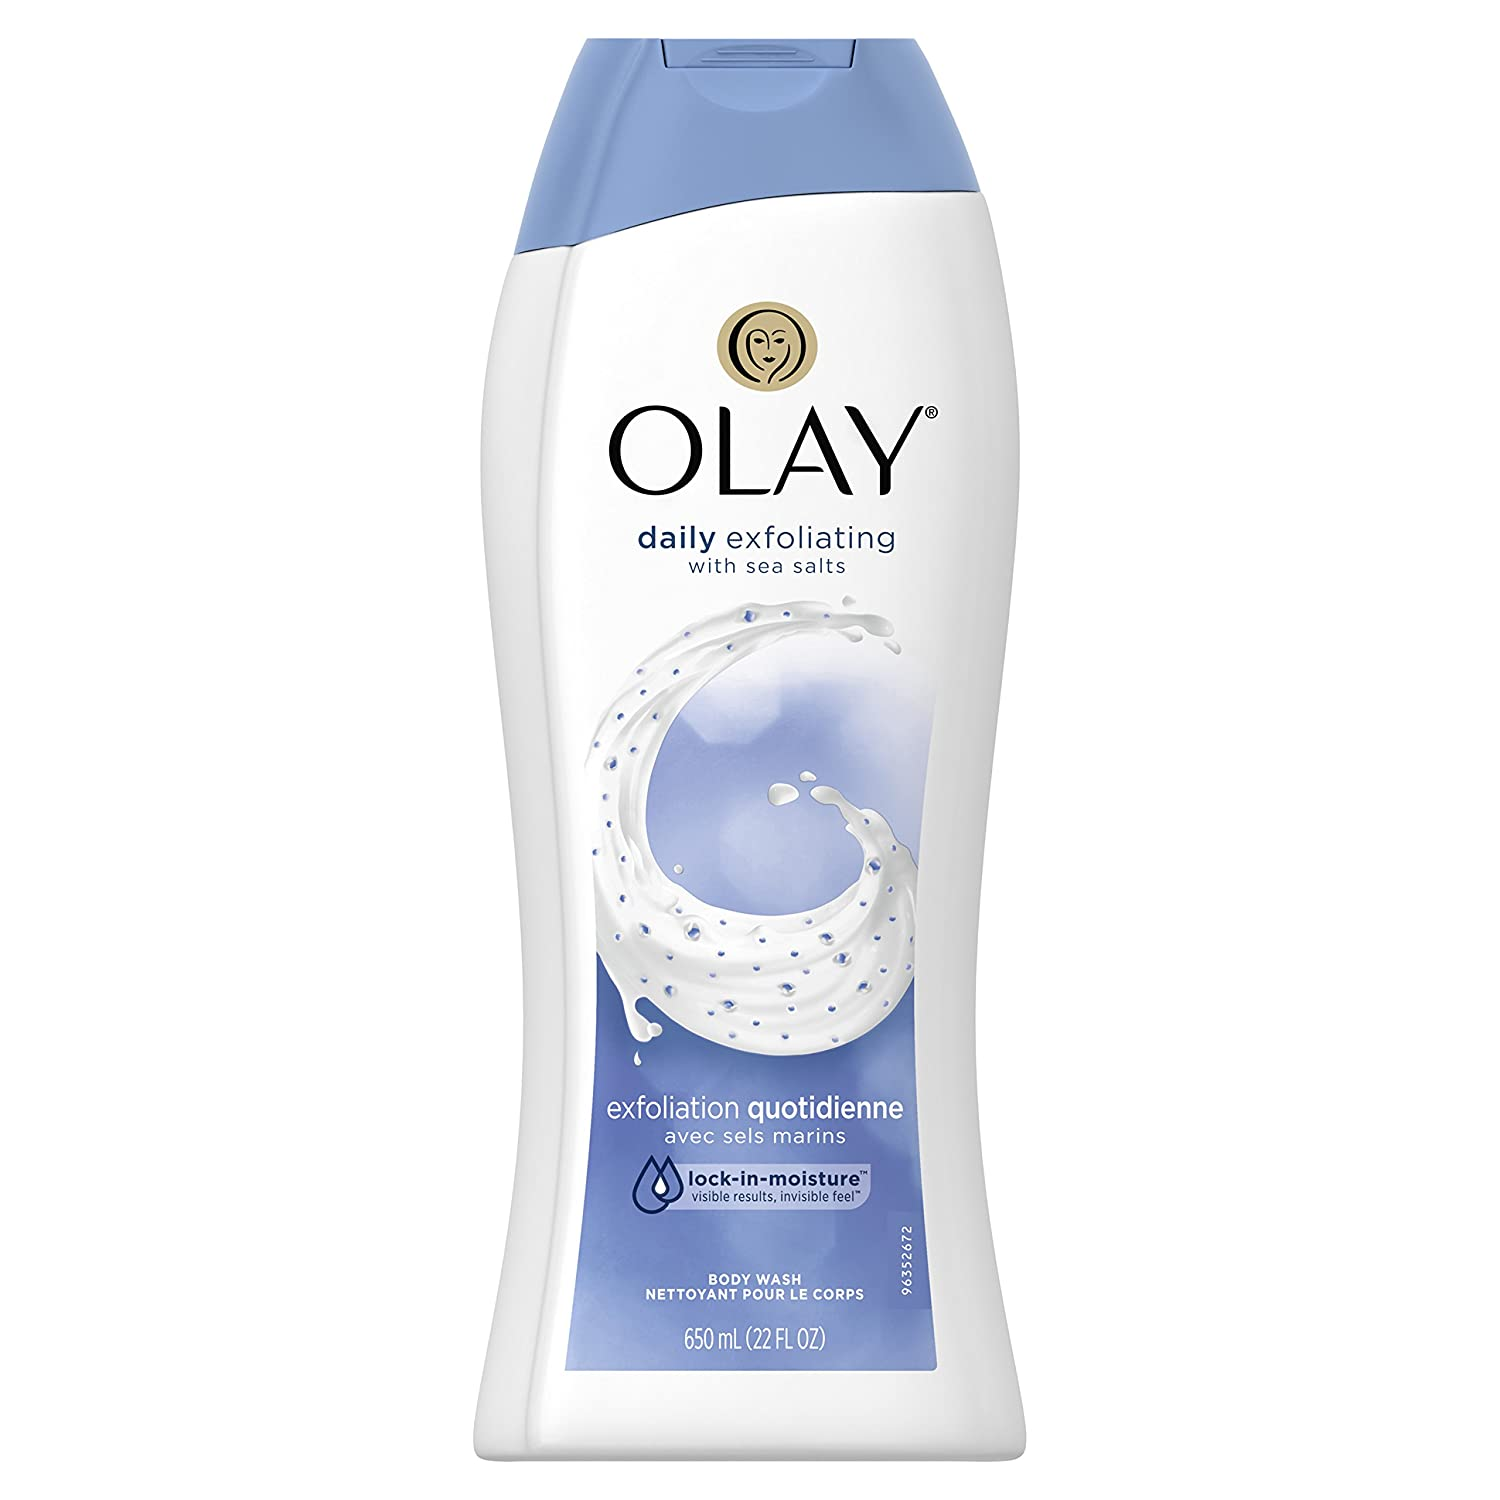 Olay Age Defying Bodywash 887mL Pump Procter and Gamble